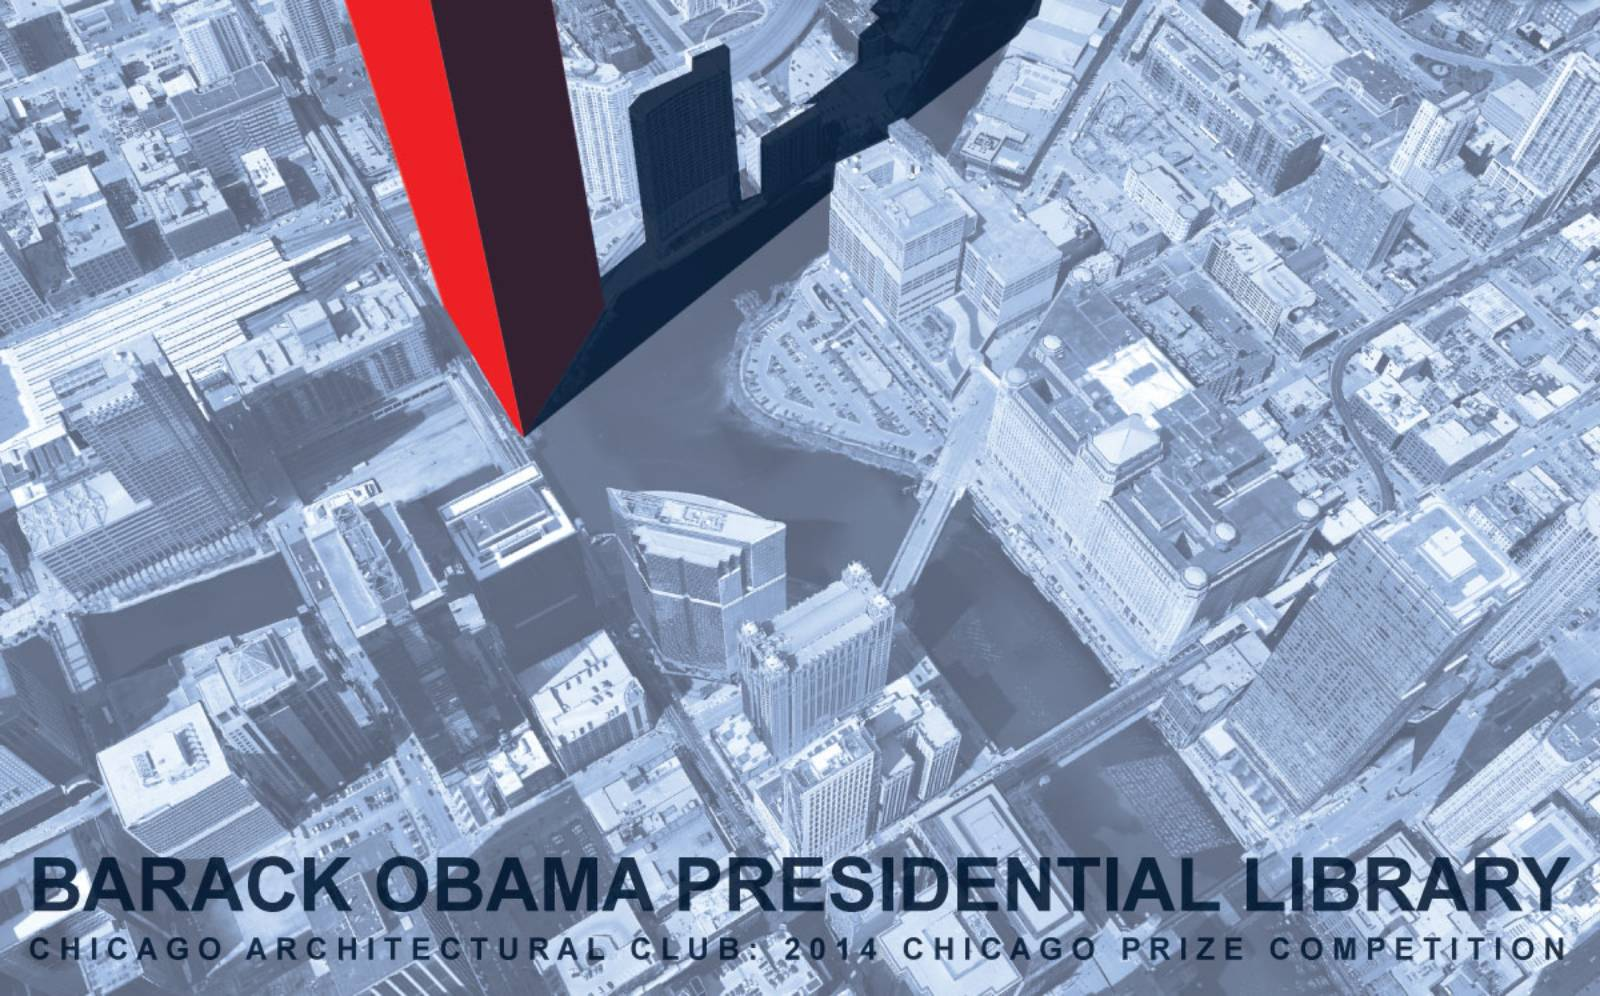 Barack Obama Presidential Library Competition